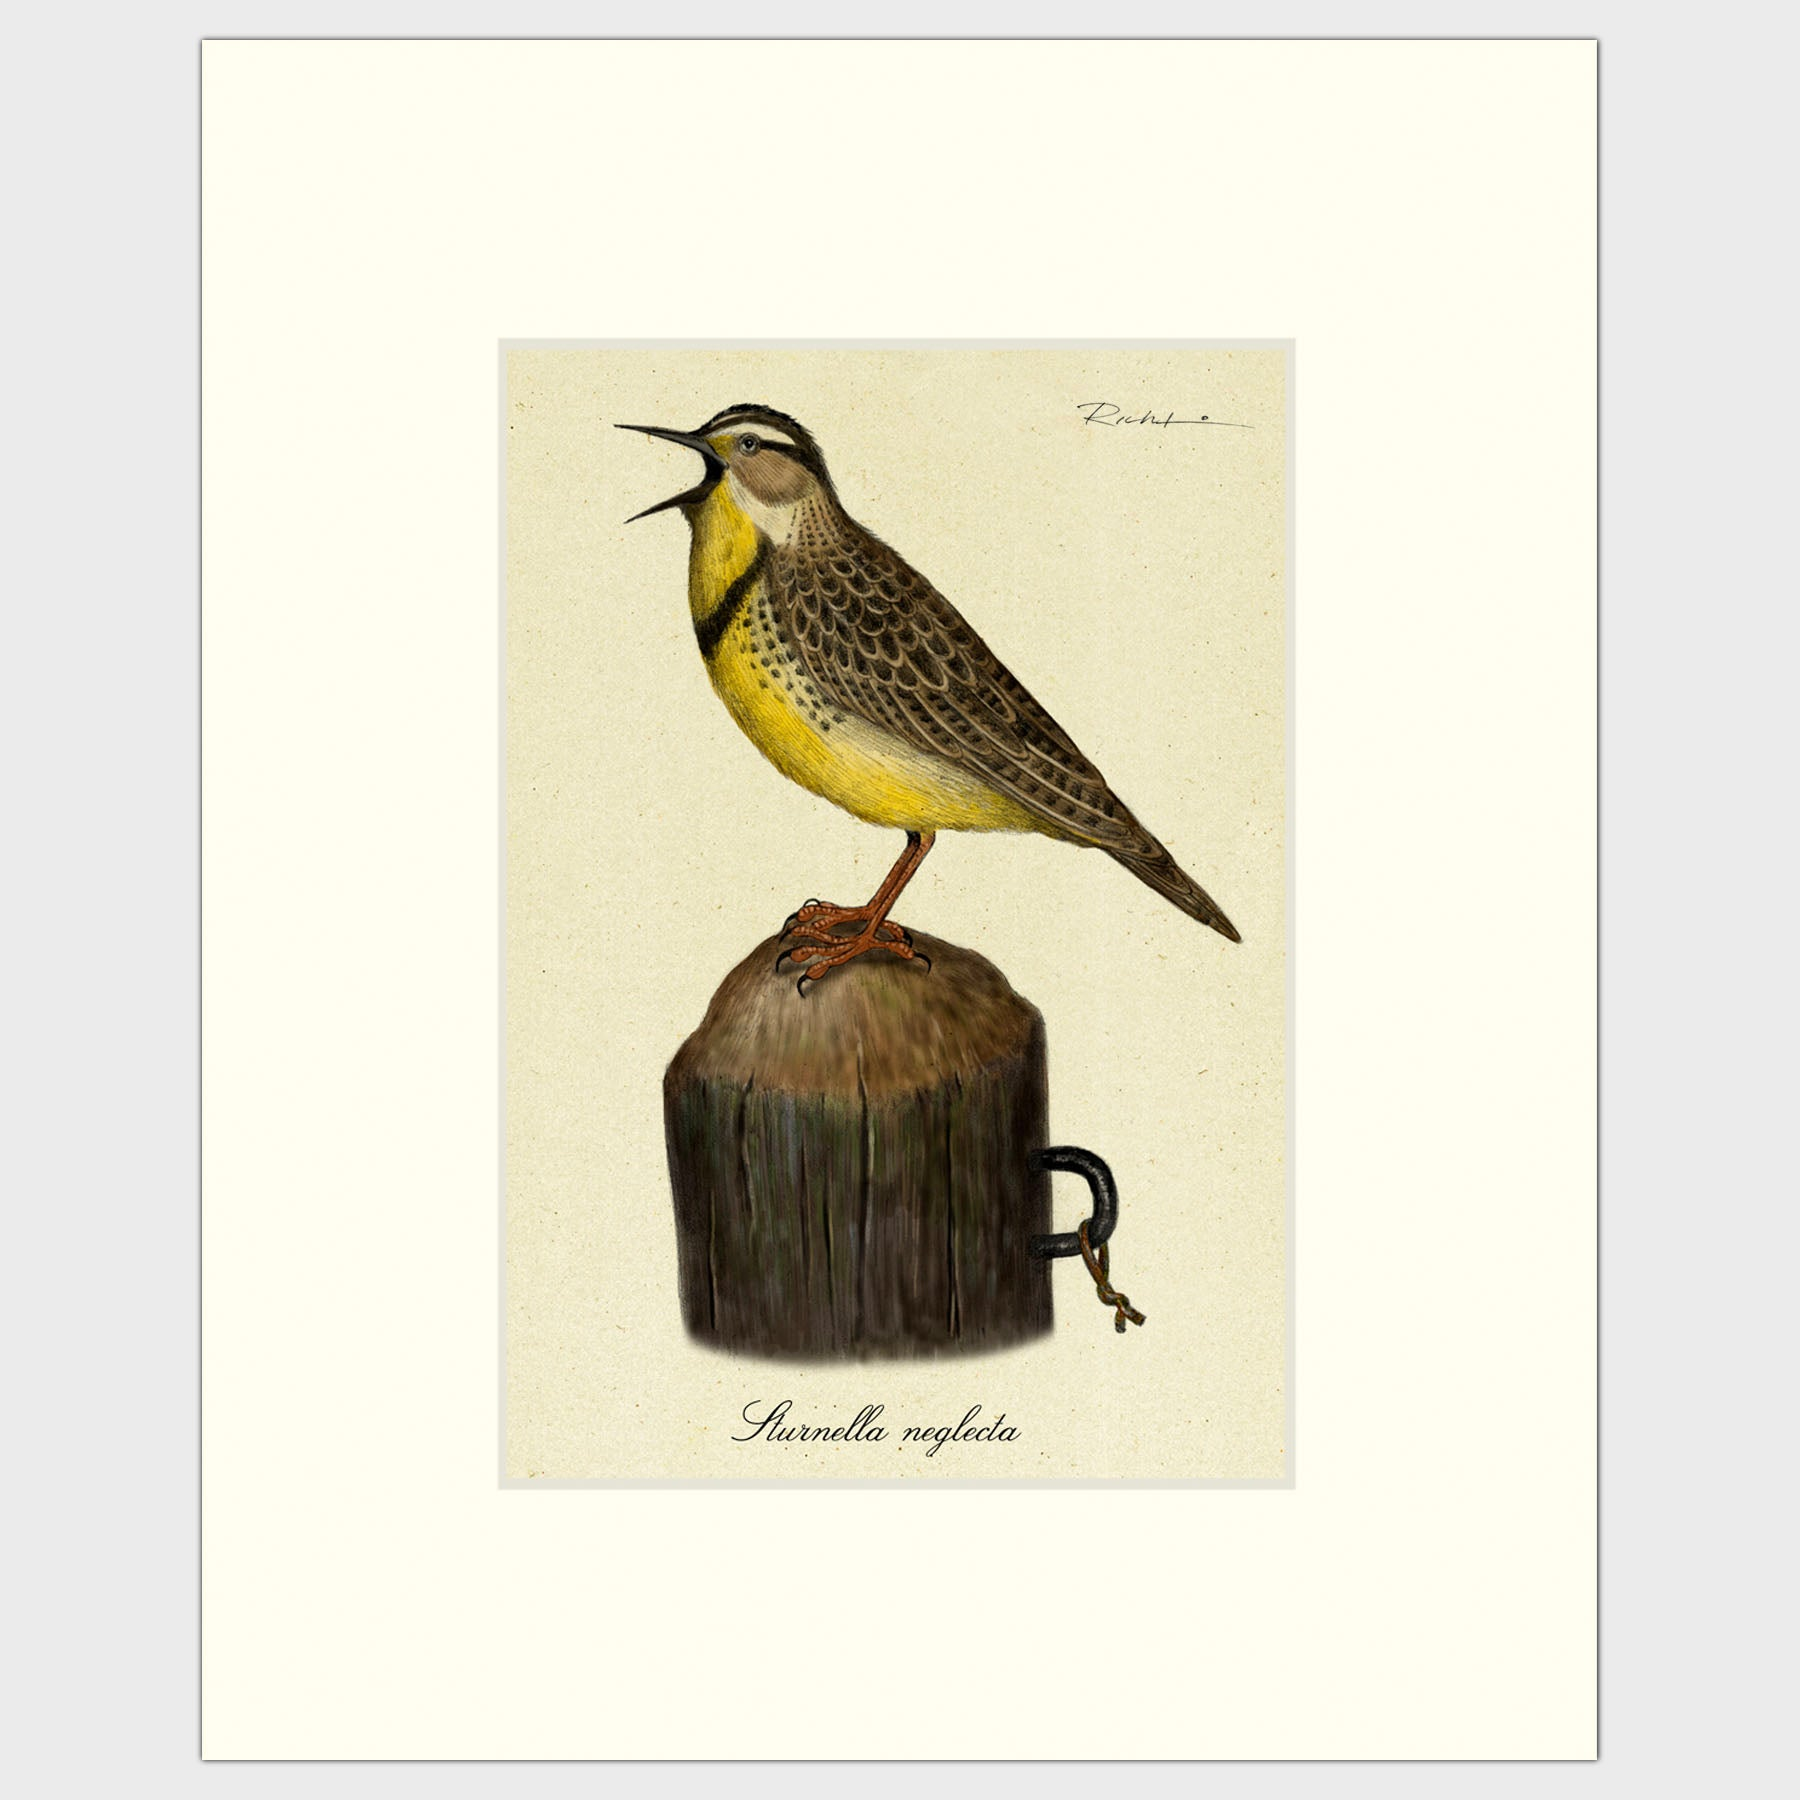 Art prints for sale-Traditional rendering of a calling meadow lark standing on a small post